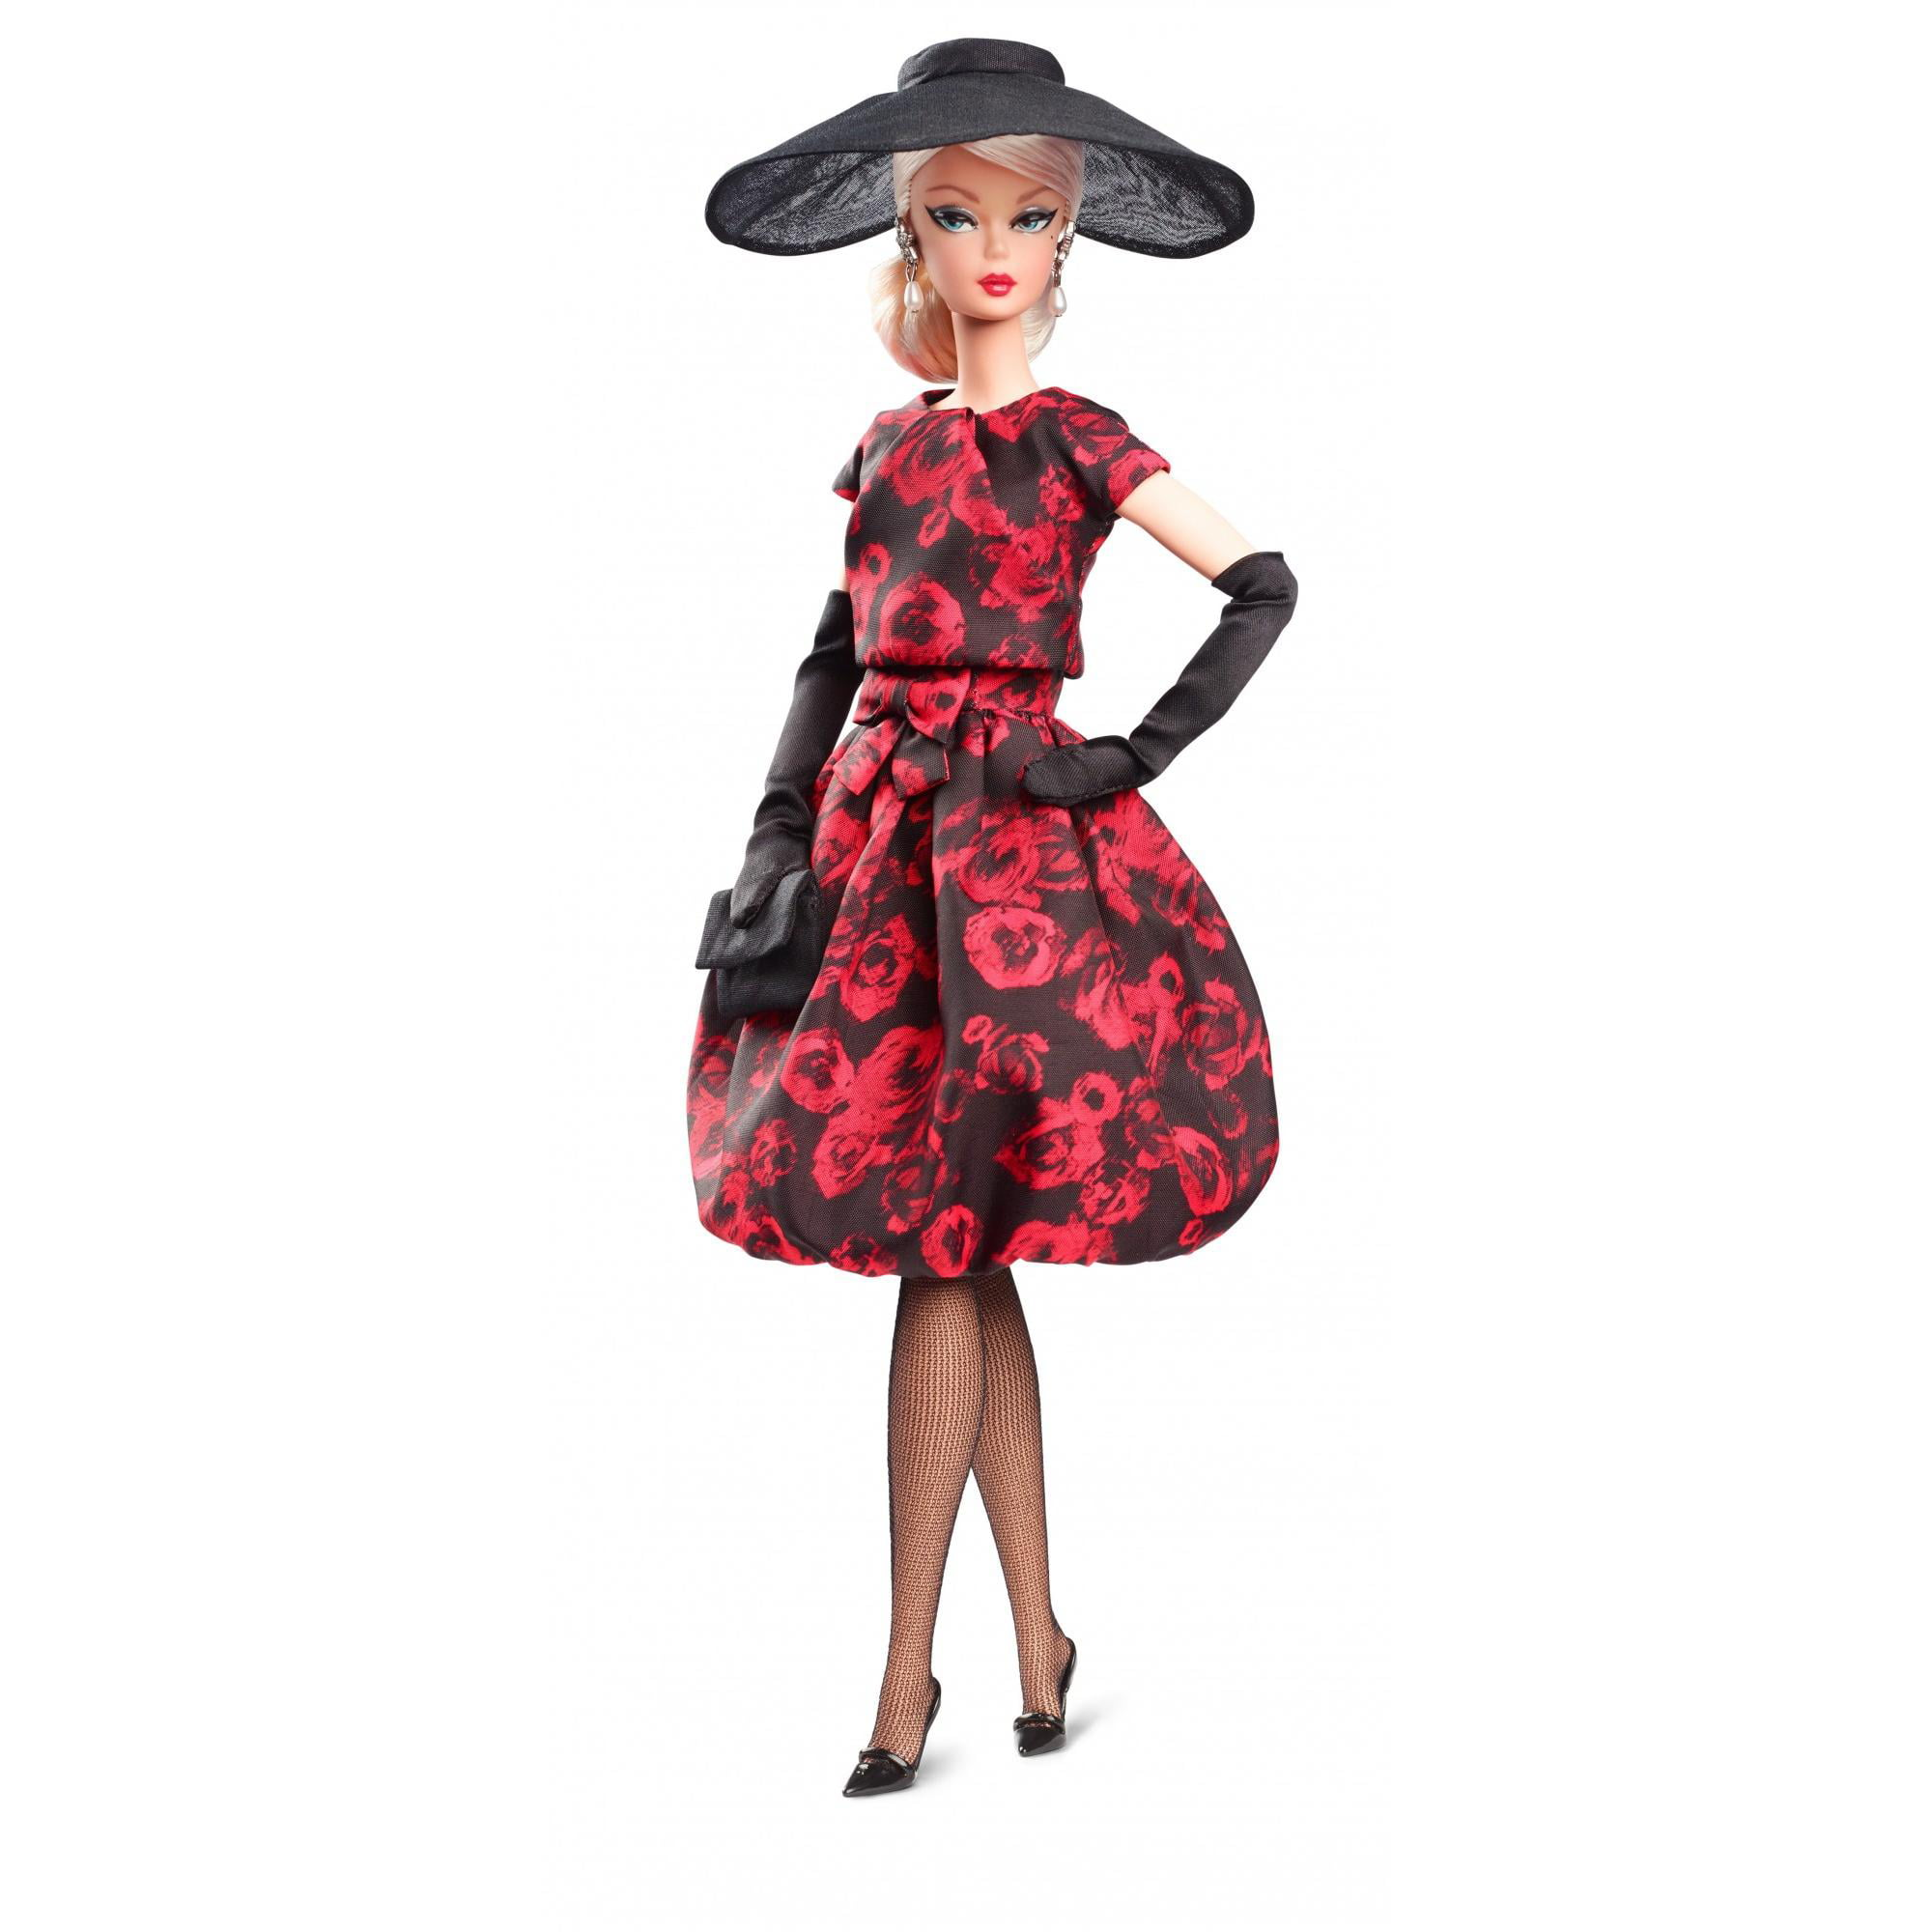 Barbie Elegant Rose Cocktail Dress Doll by Mattel